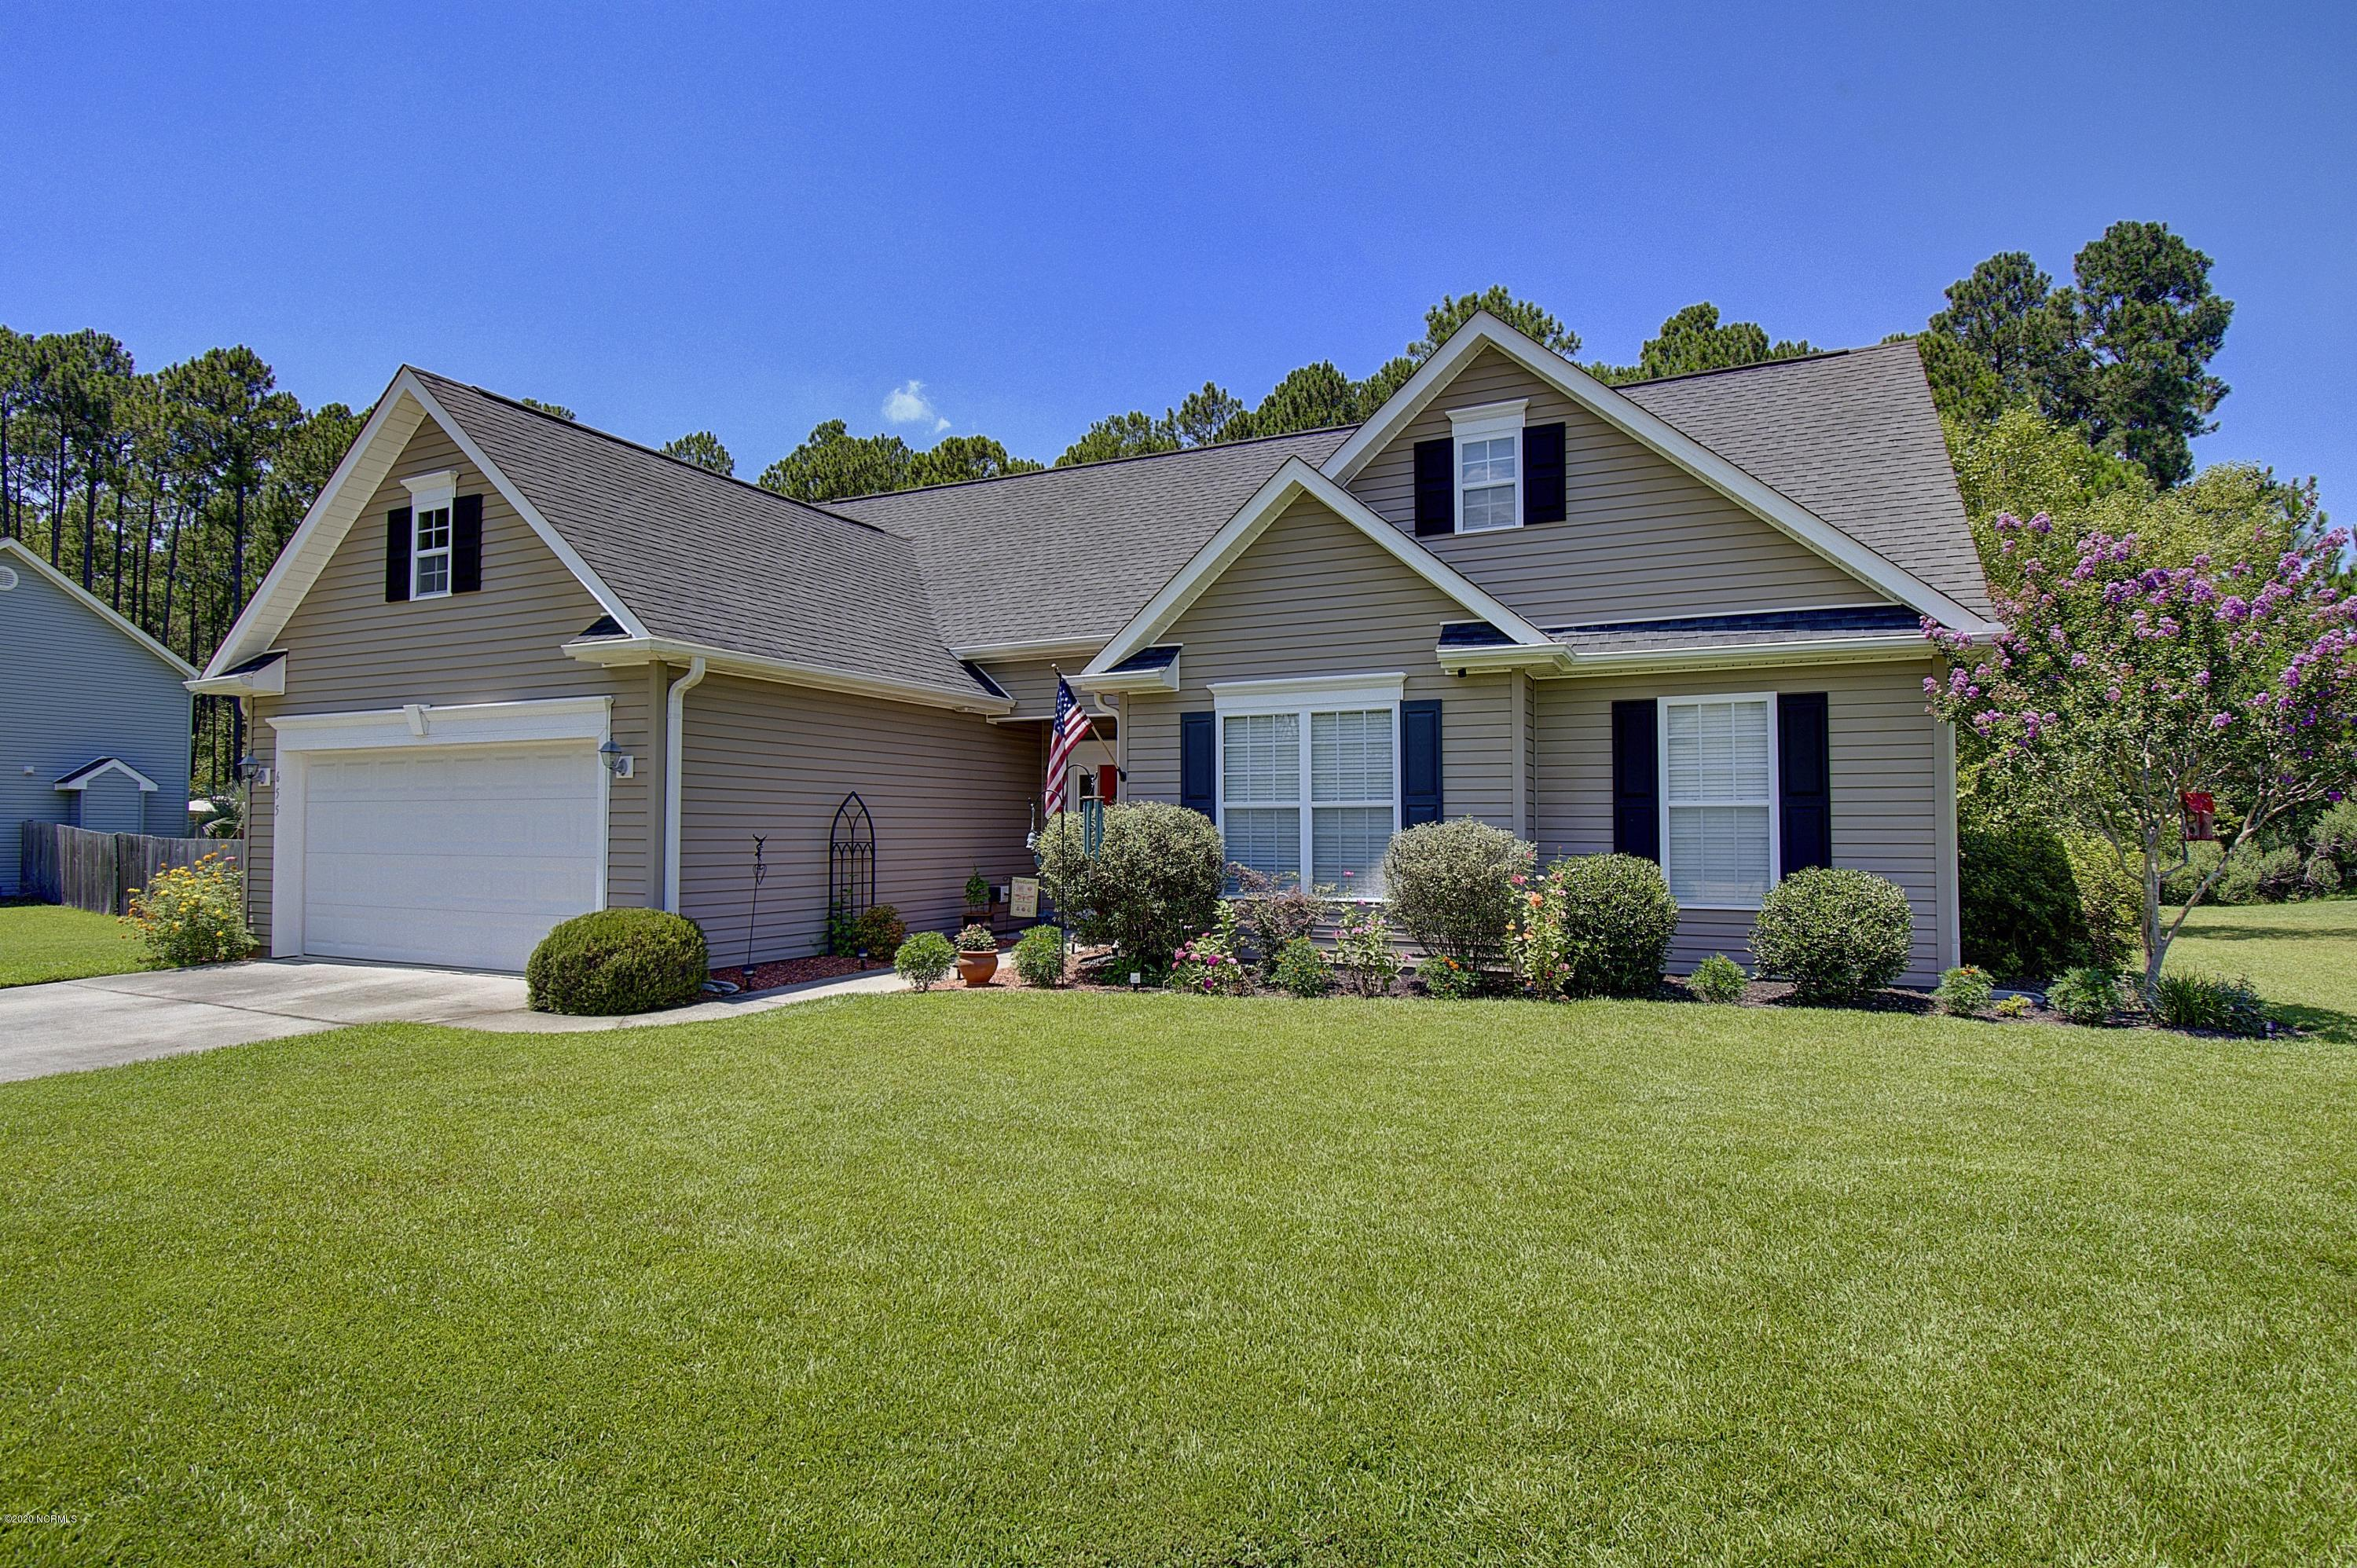 655 W Pipers Glen Shallotte, NC 28470